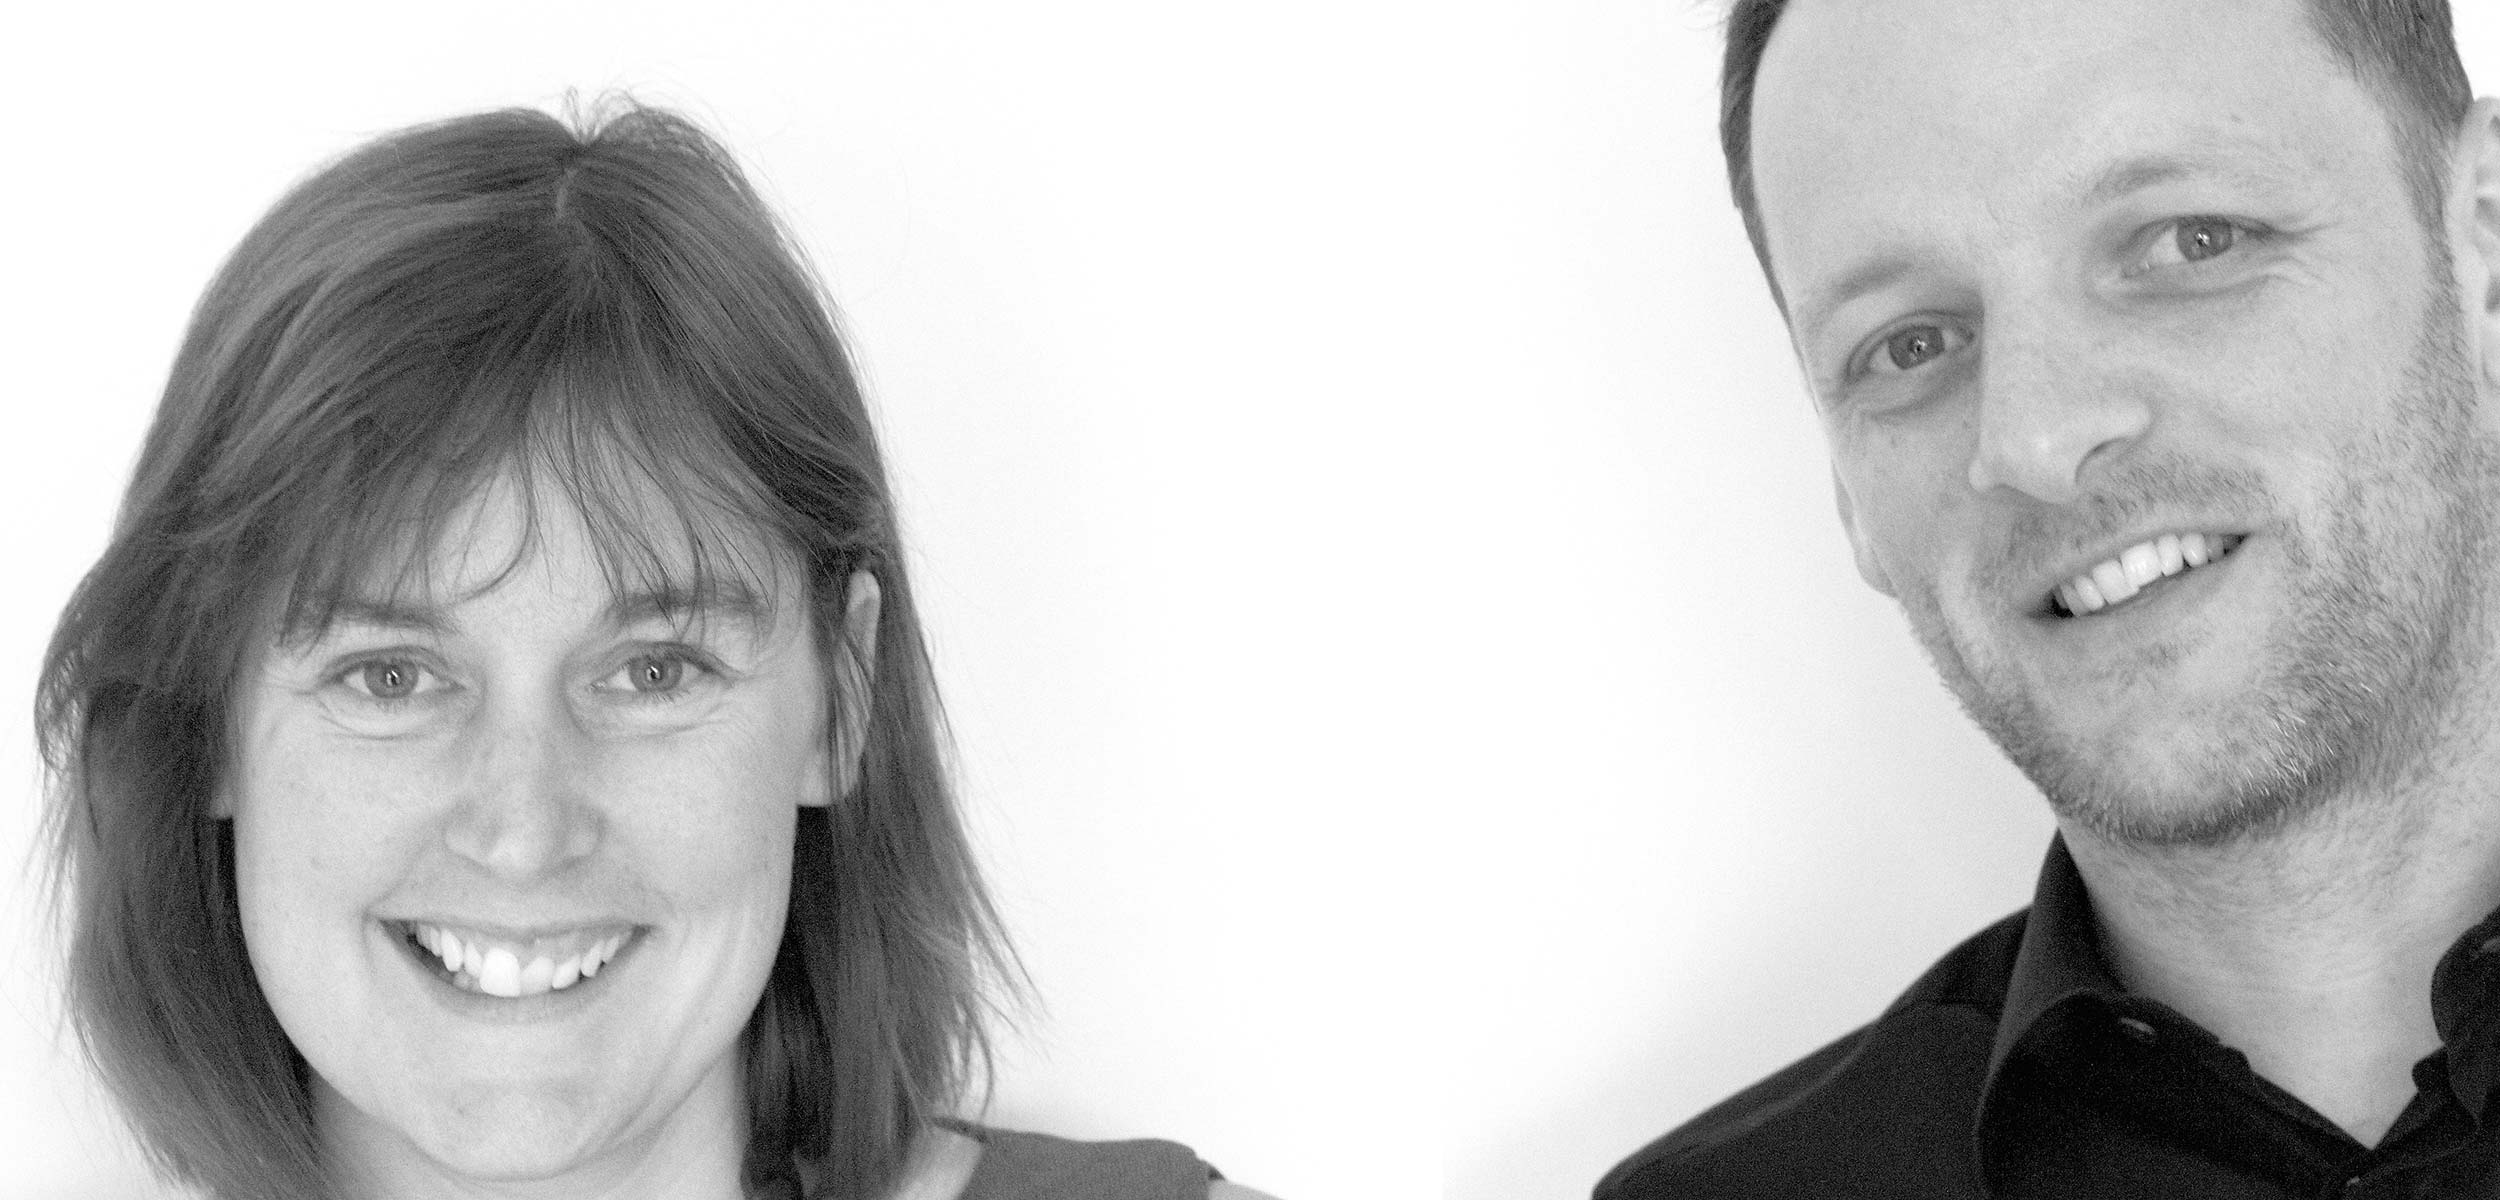 black and white photo of directors Cal Williamson and Paul Kitchin from WK Design Architects in Cumbria